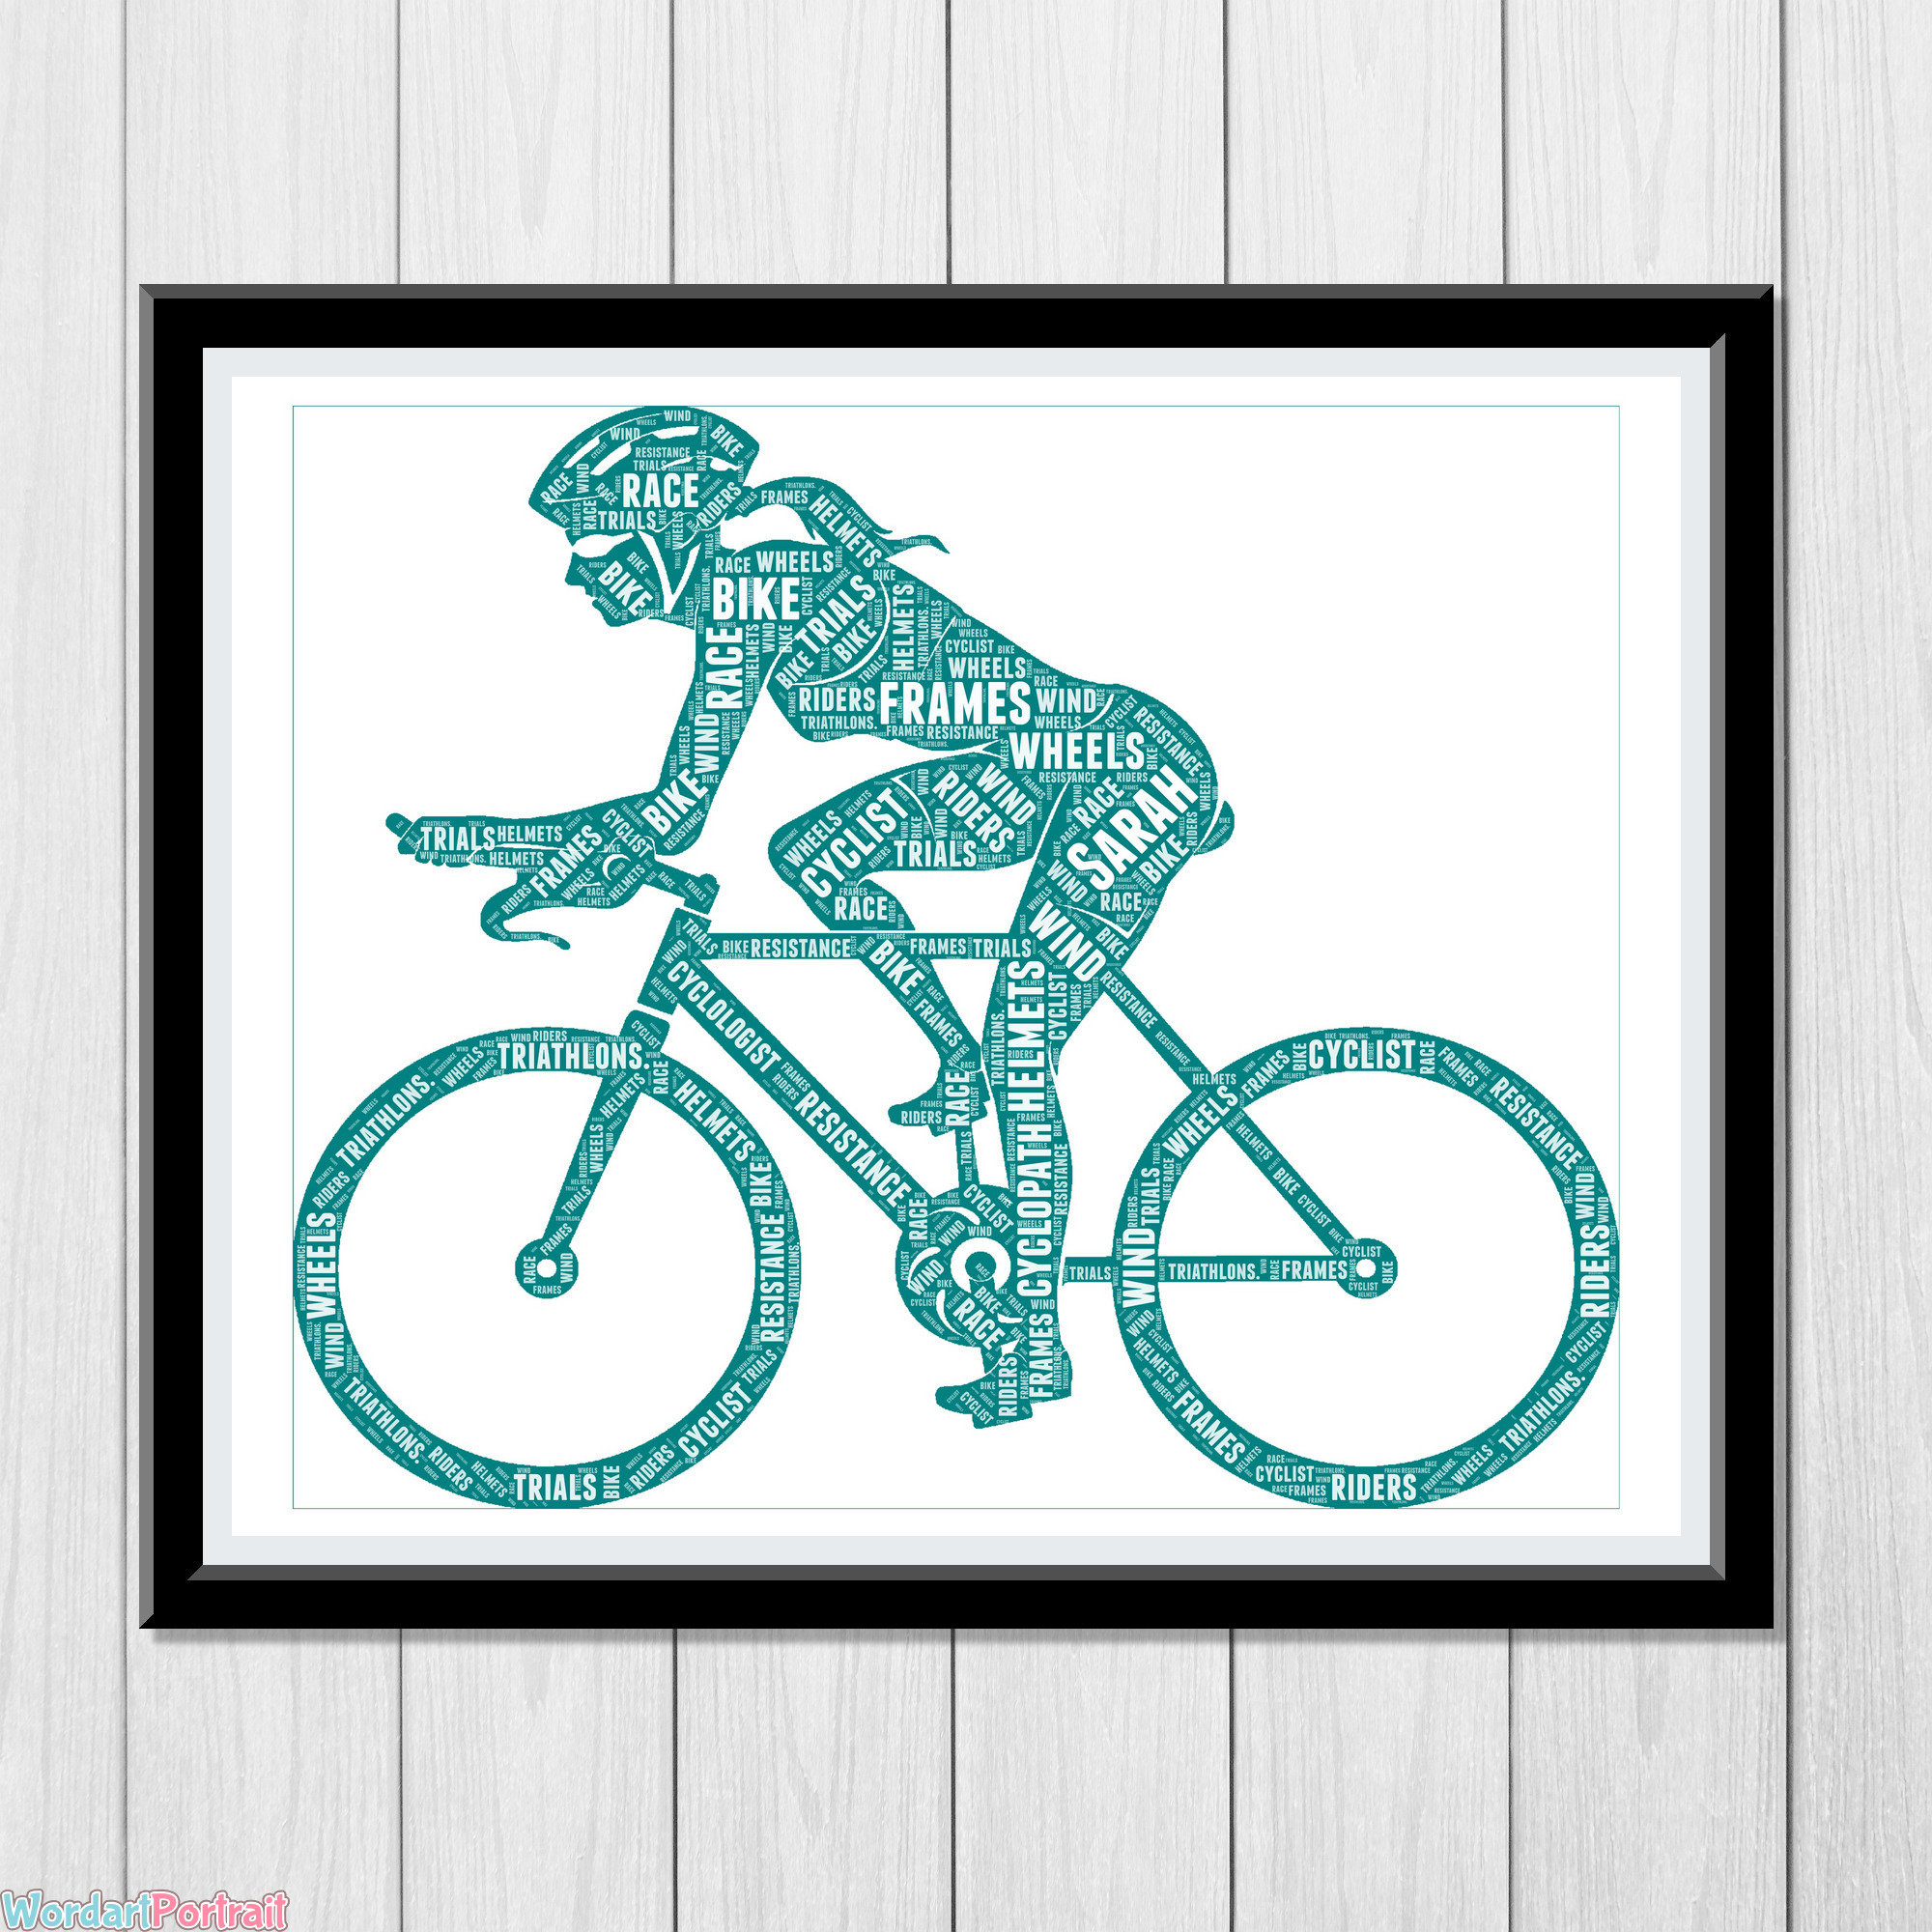 Bike Rider Female Cyclist Personalized Gift for Her Girl Cycle Racing Bicycle Gifts Daughter Sister Girlfriend For Her Gifts Word Art Cloud